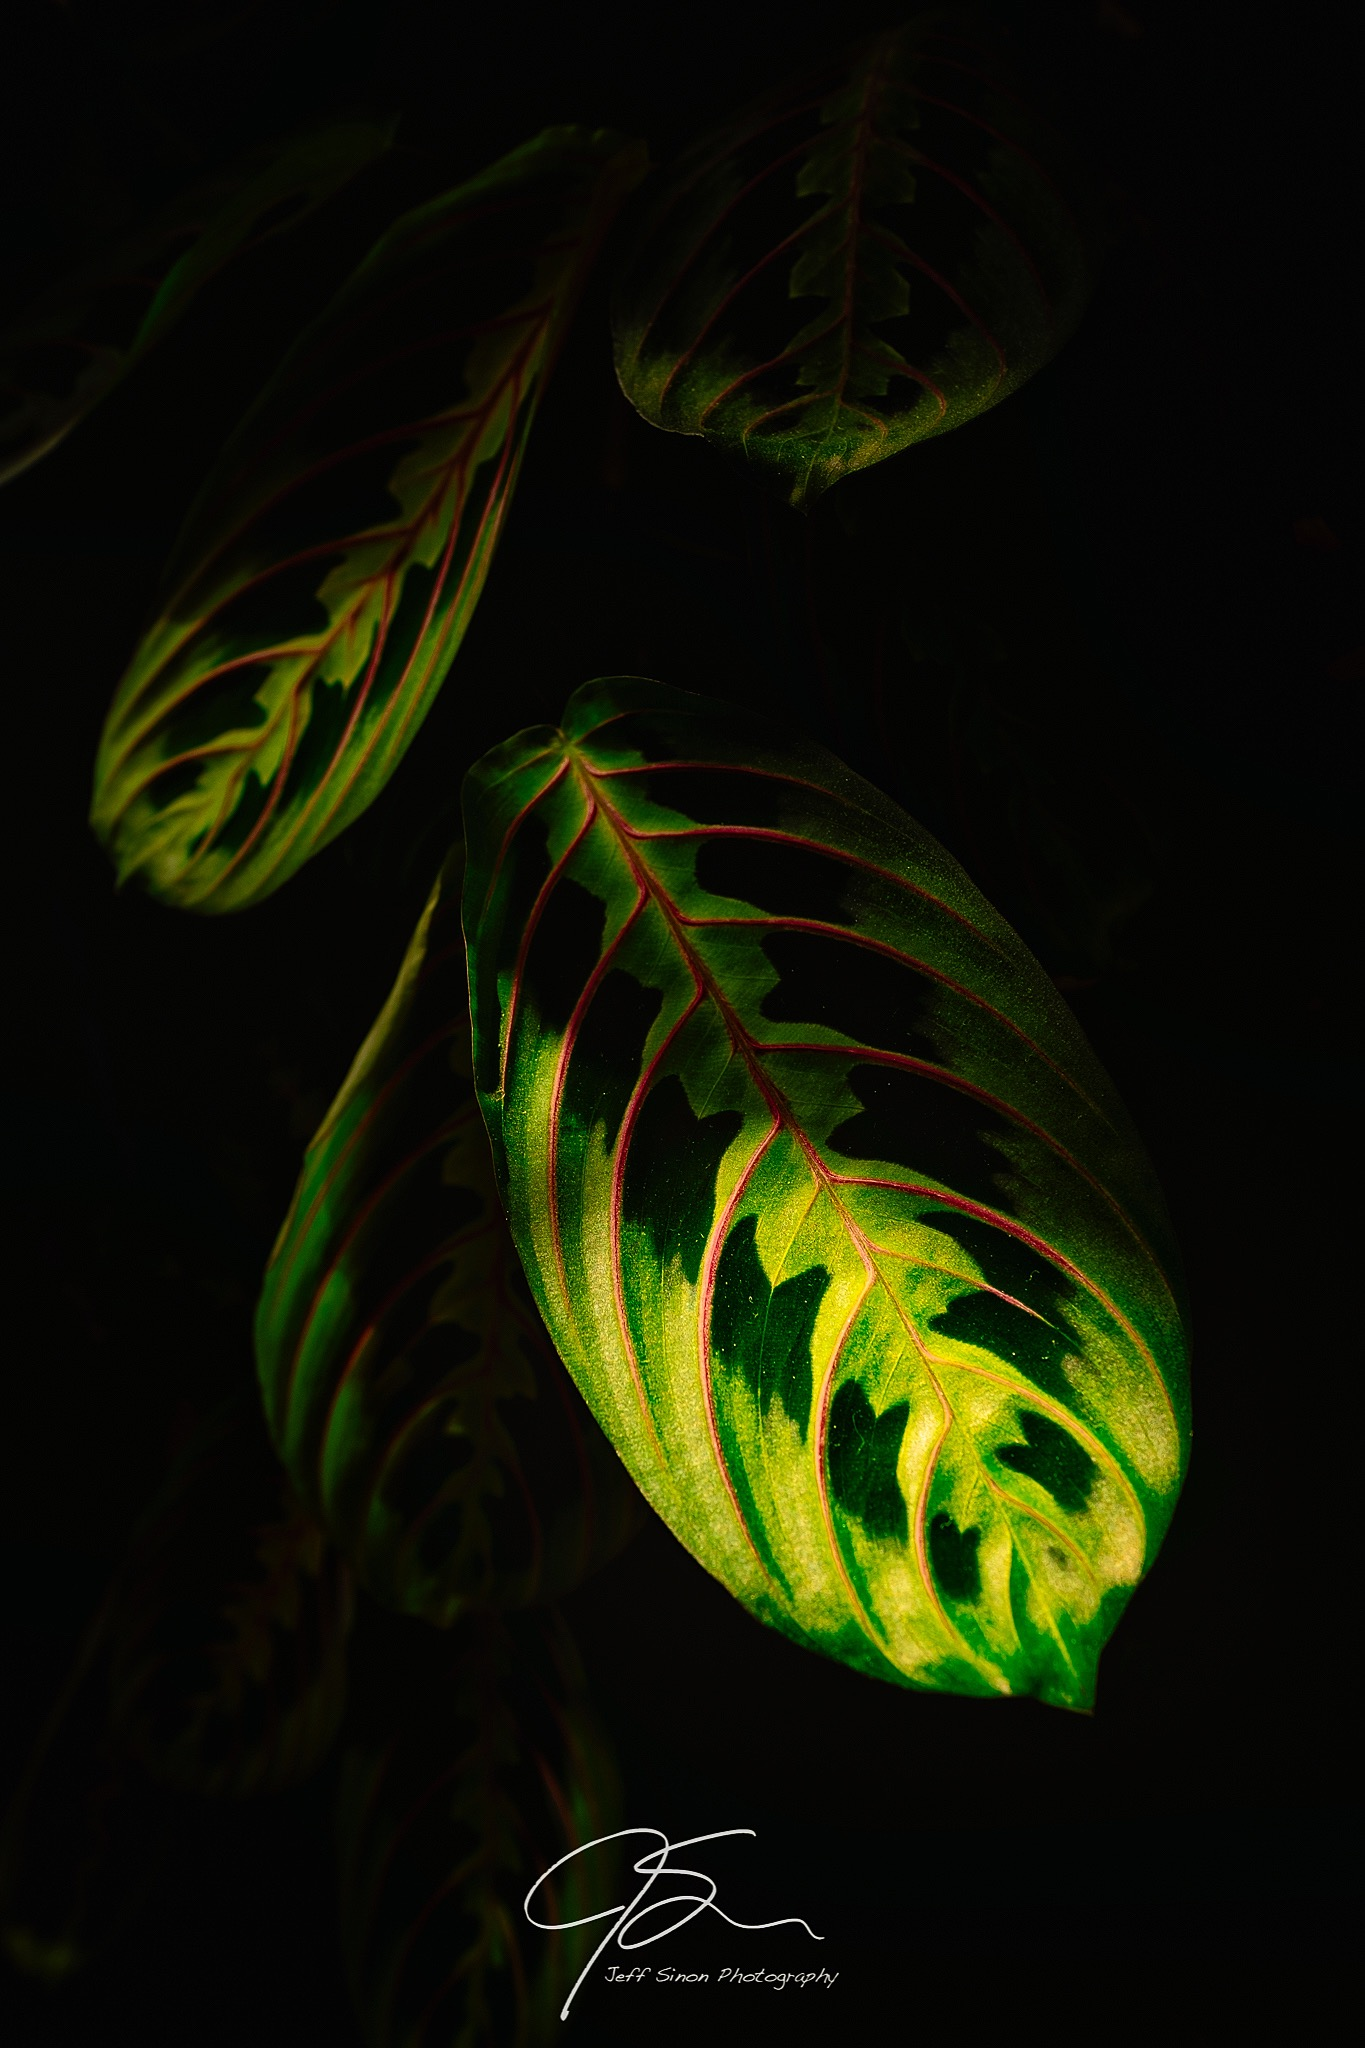 Prayer plant in the window light with dark shadows.